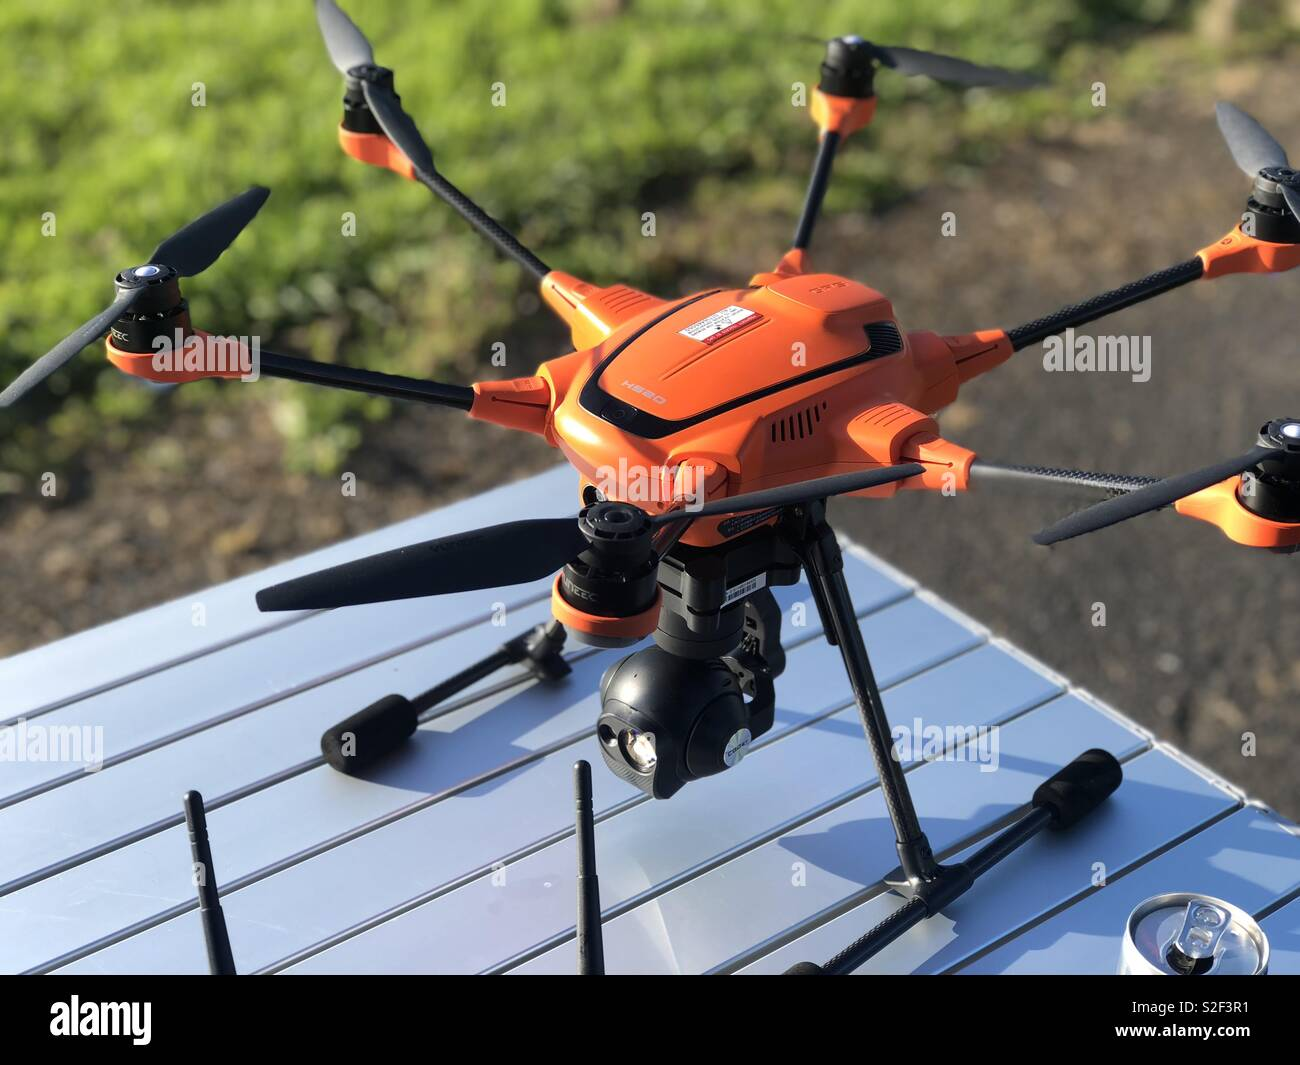 Orange hexacopter with gimbal controlled camera - Stock Image